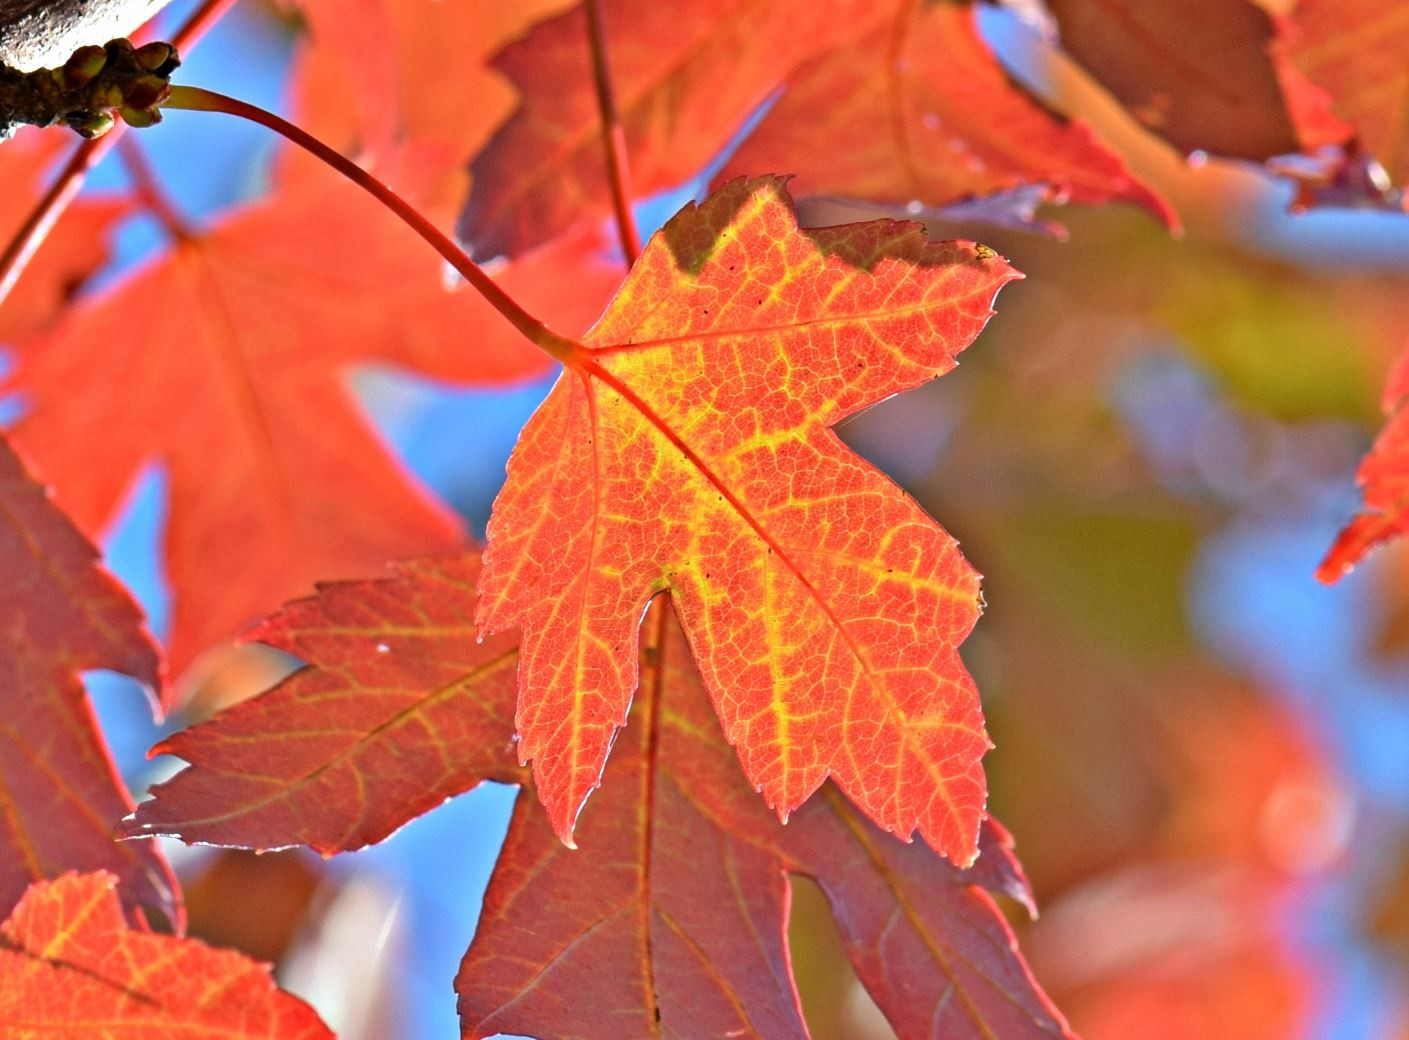 Maple leaves have changed to bright red and orange and glow in the sun. Glimpses of blue sky are visible in the background.